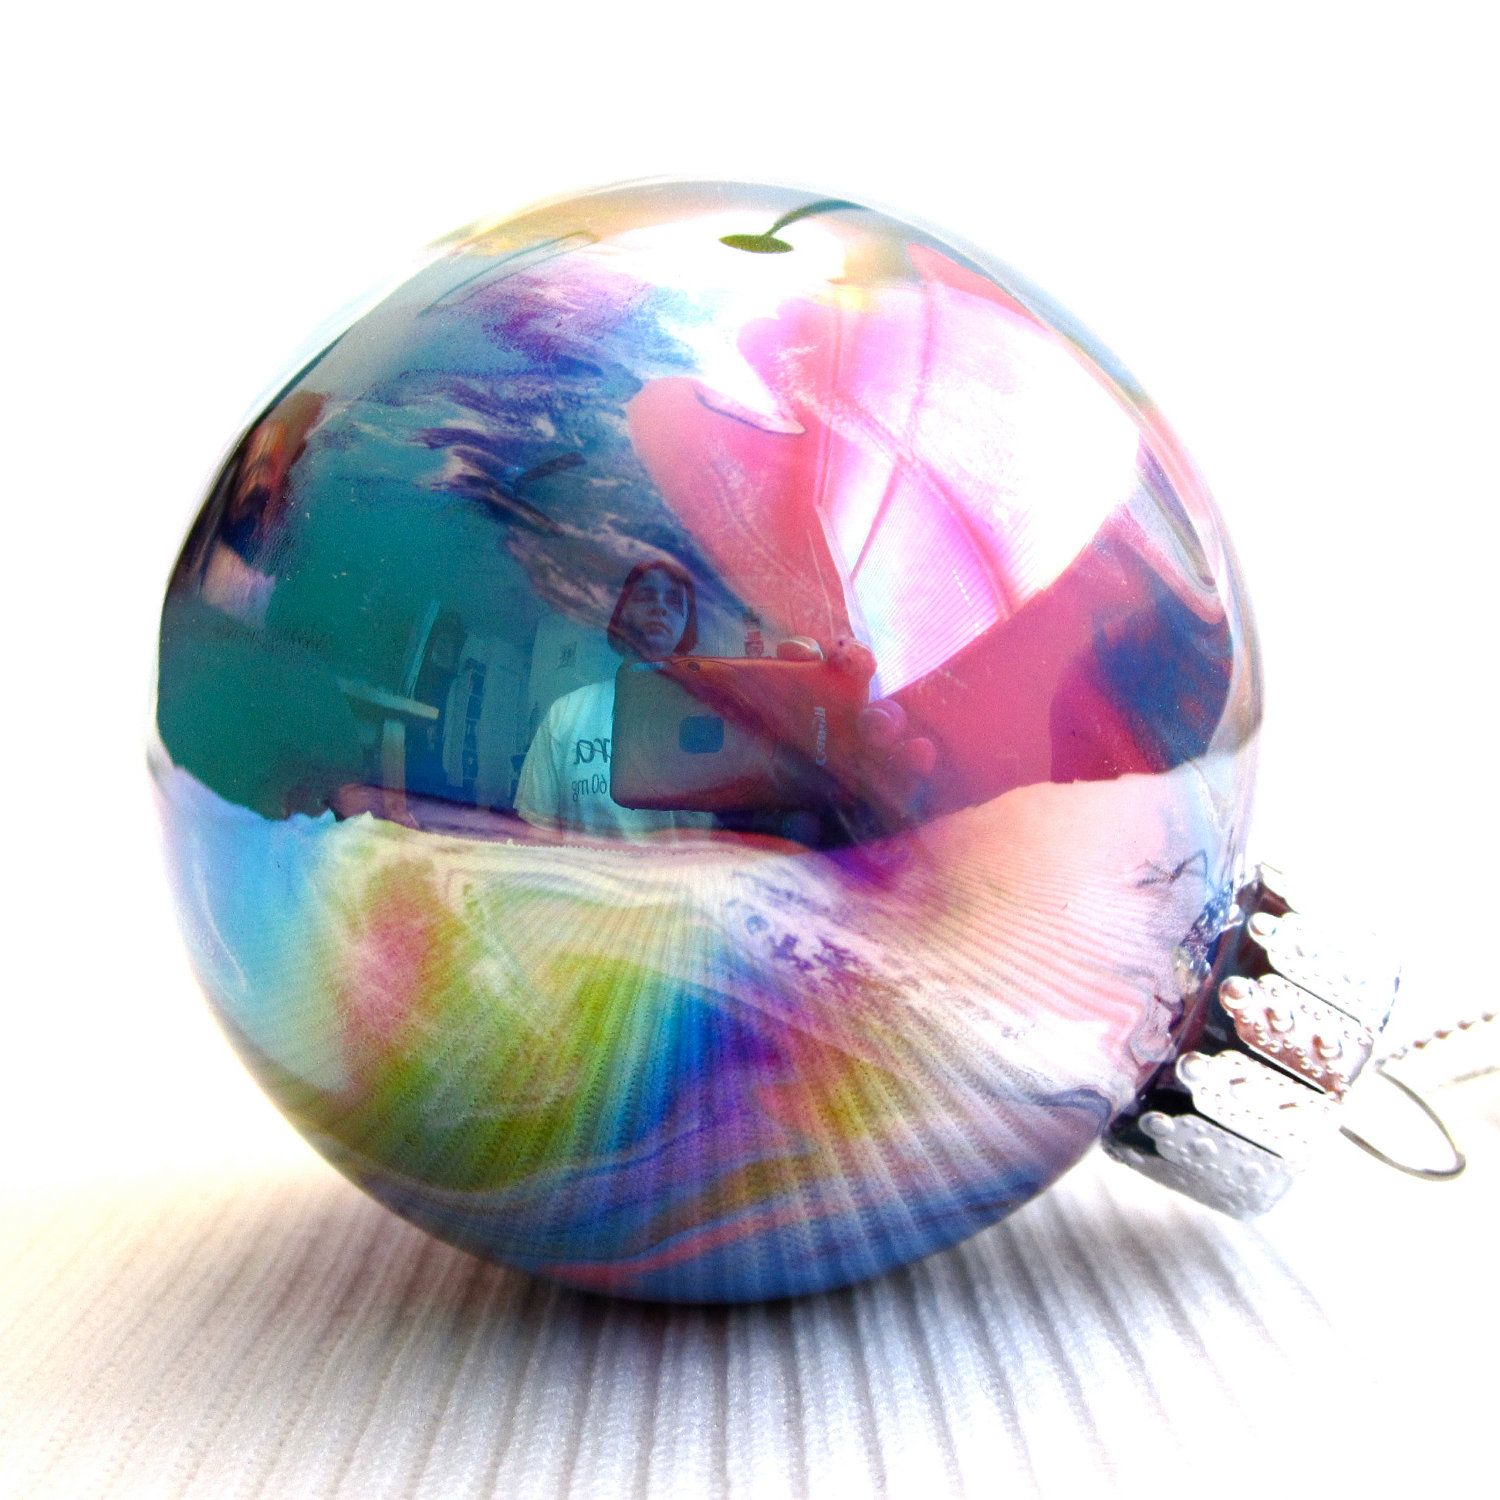 Multicolored 2 12 Iridescent Round Glass Ornament Painted Inside $1500,